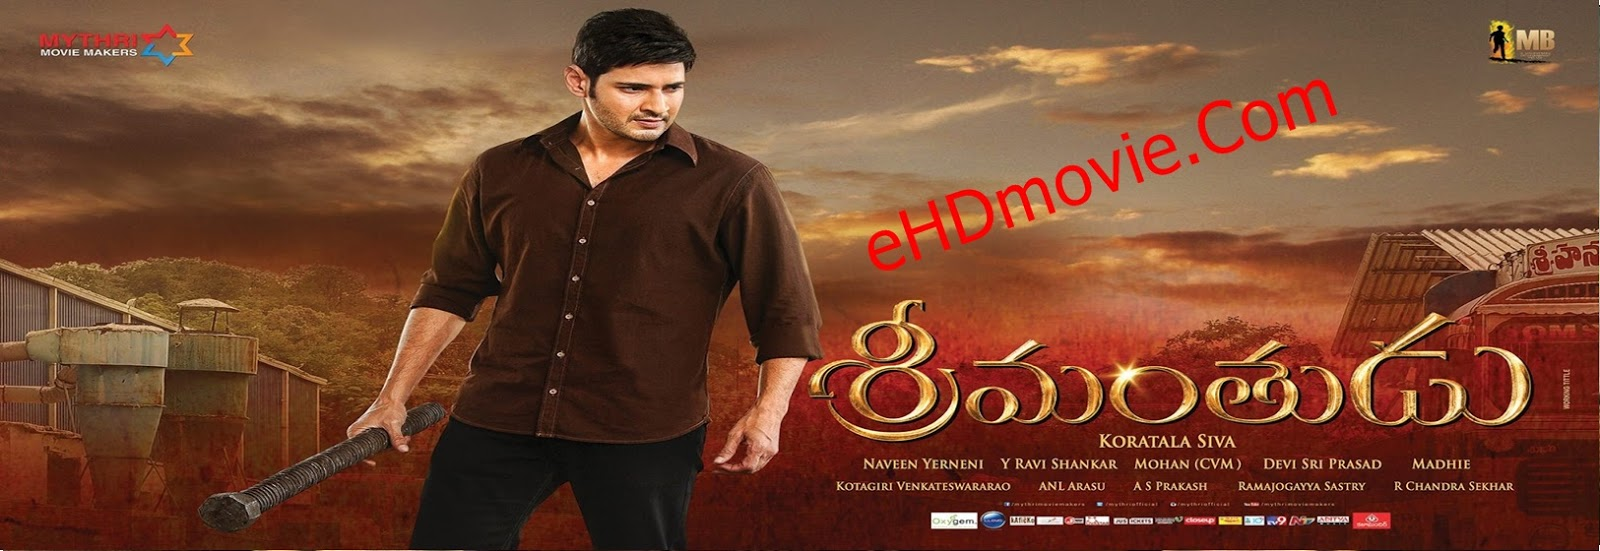 The Real Tevar [Srimanthudu] 2015 Full Movie Dual Audio [Hindi – Telugu] 720p - 480p ORG BRRip 500MB - 1.4GB ESubs Free Download